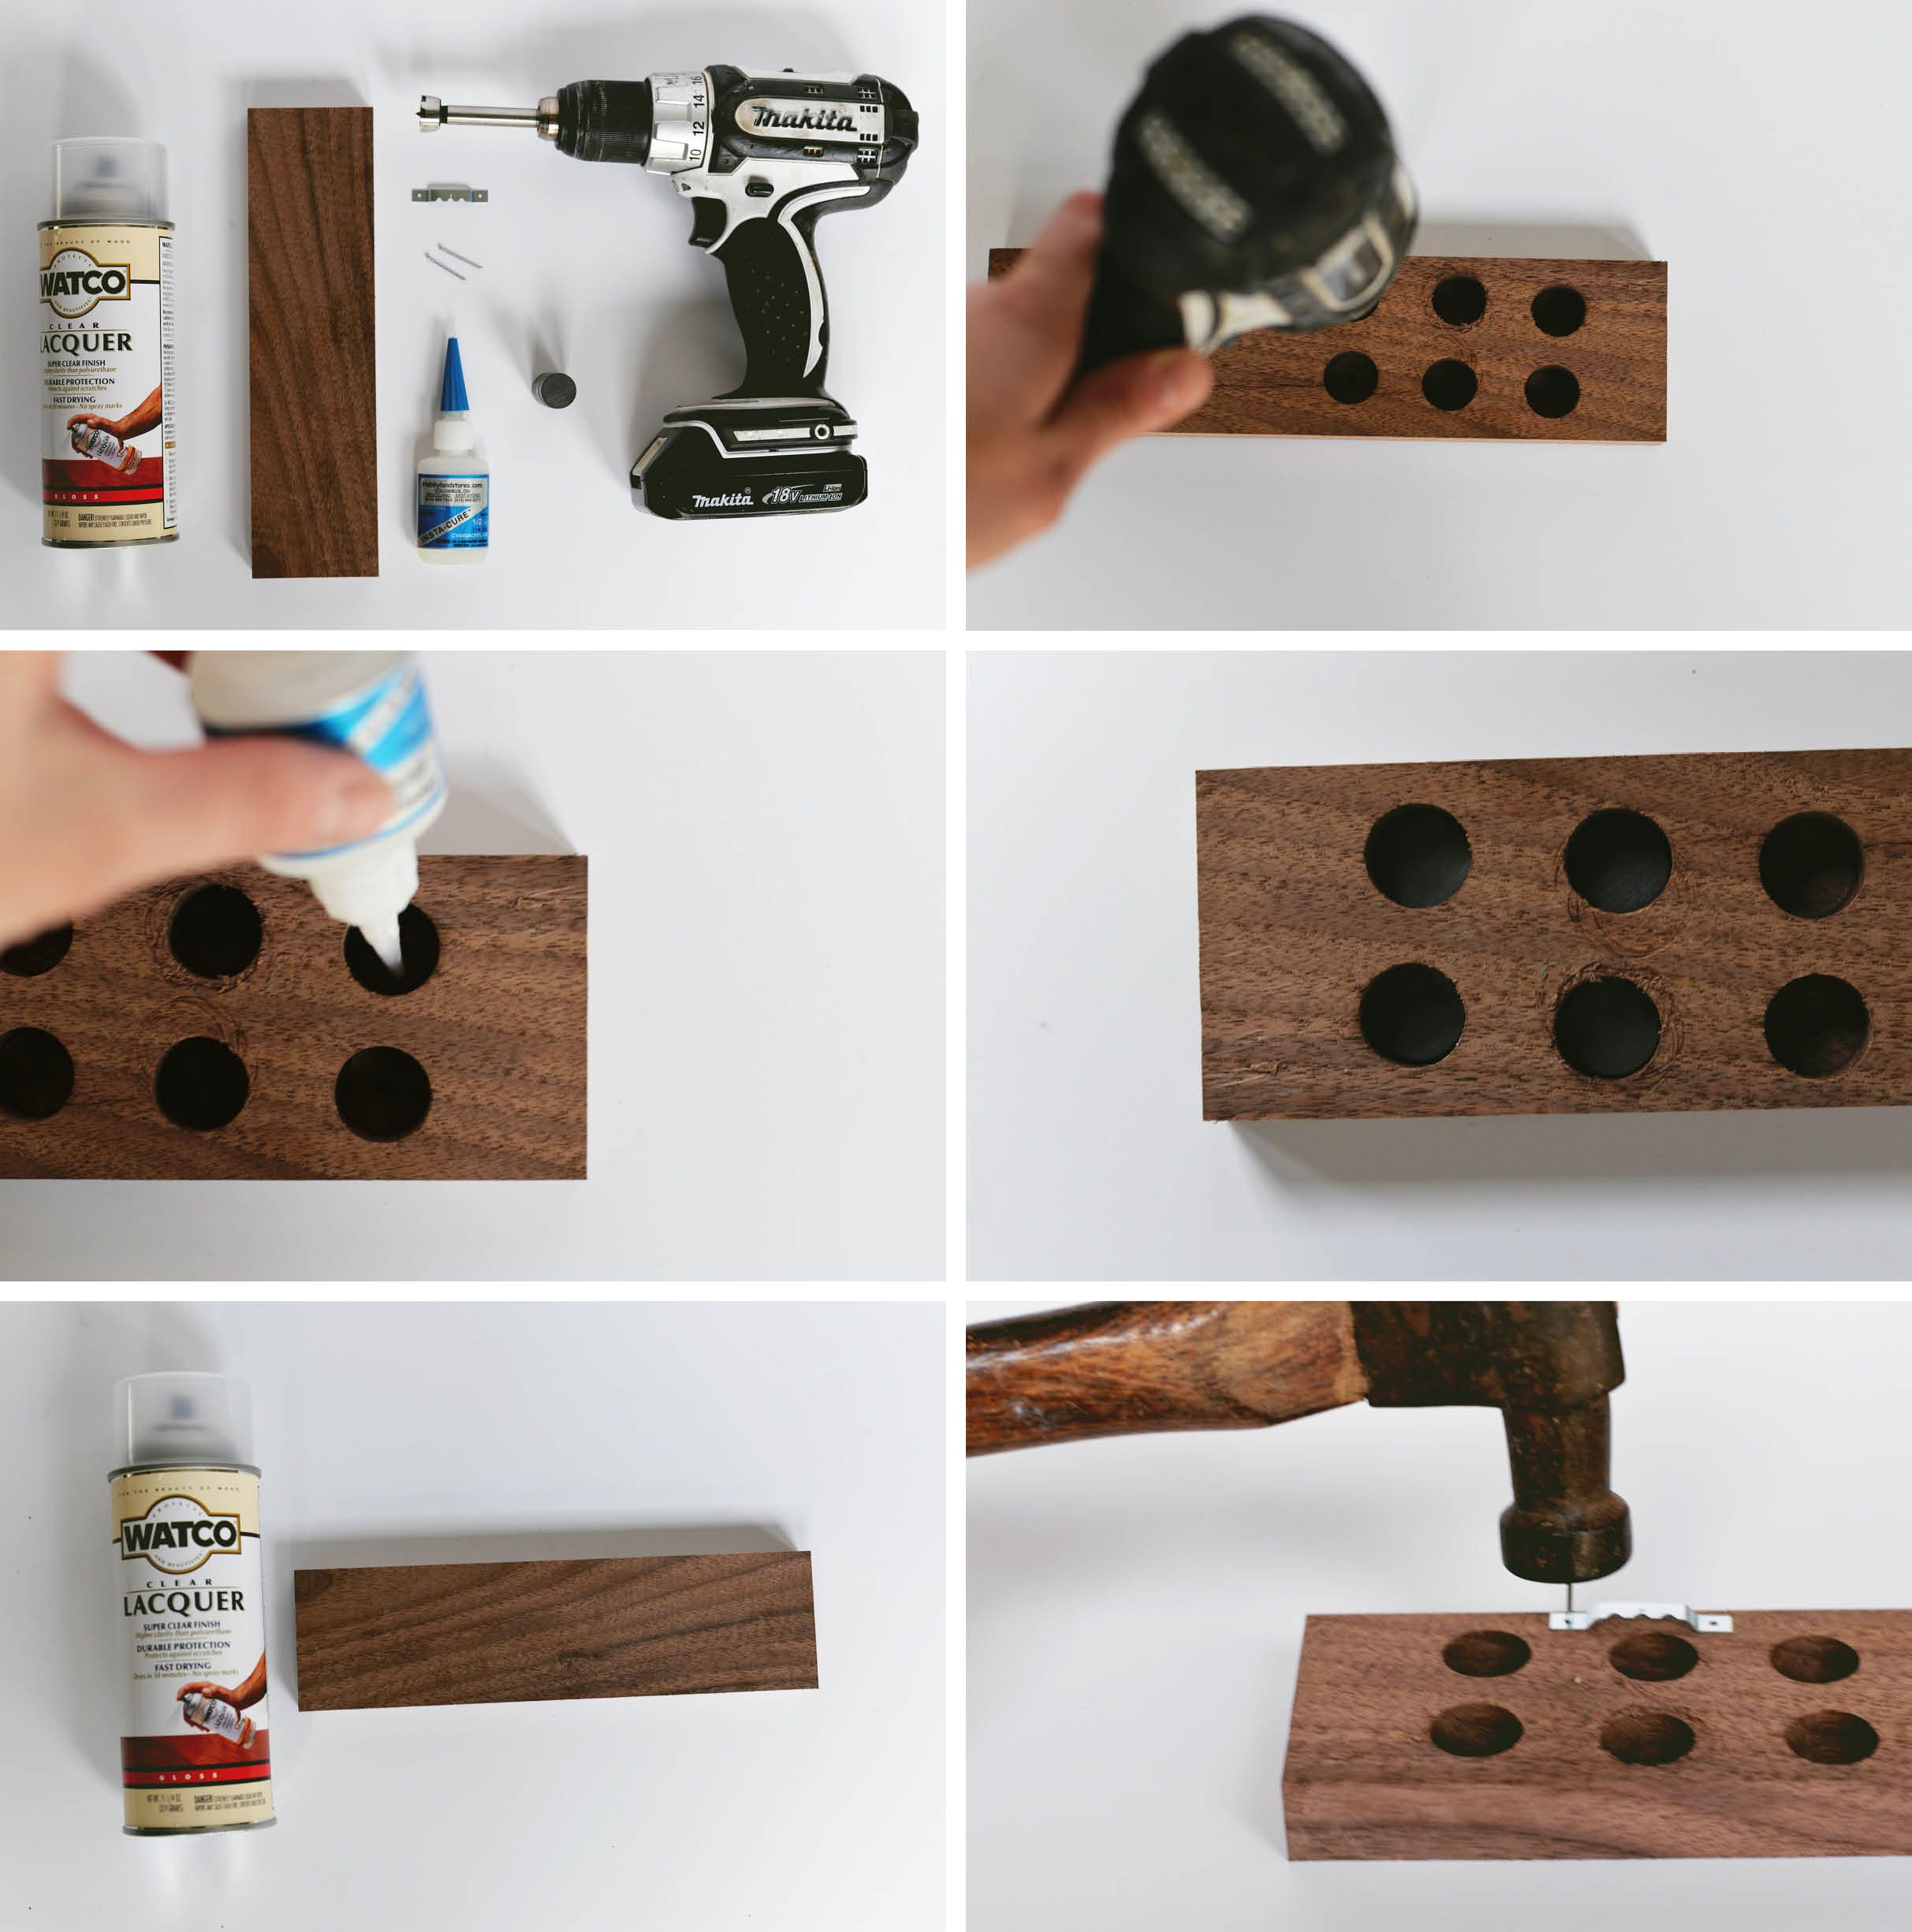 Diy Magnetic Knife Holder Magnetic Knife Holder Knife Holder